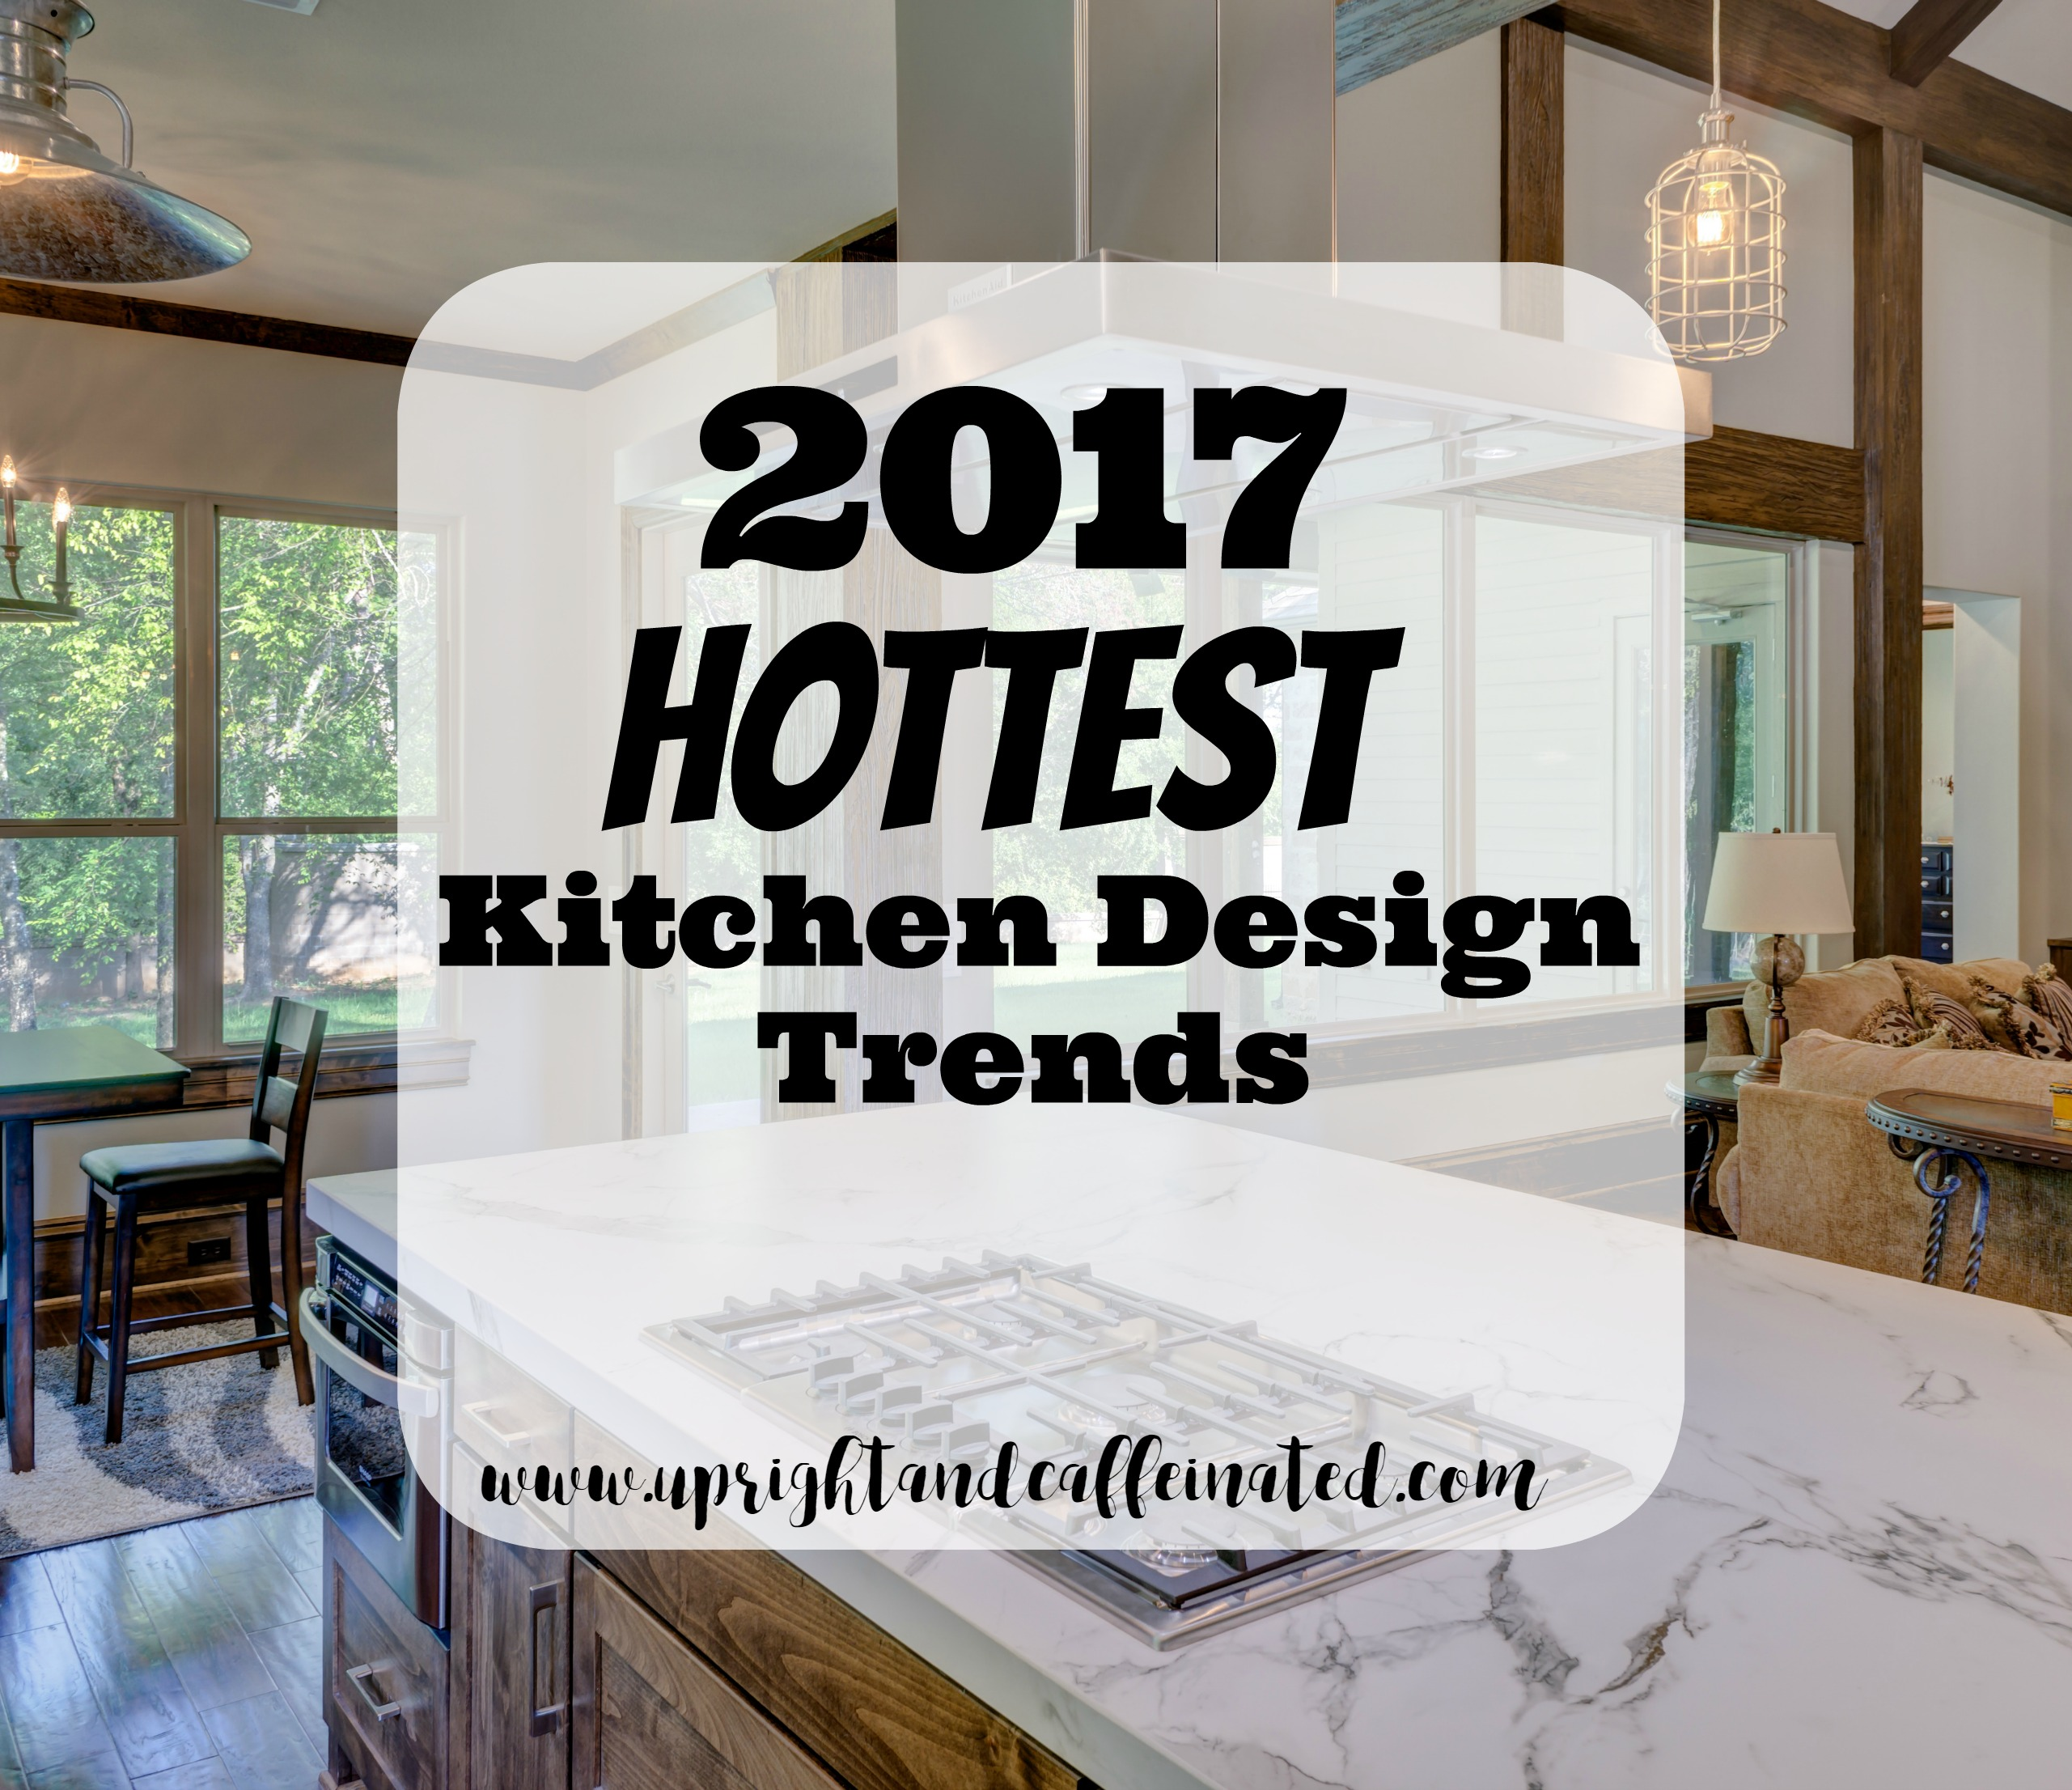 New Kitchen Designs 2017 2017 hottest kitchen trends - upright and caffeinated